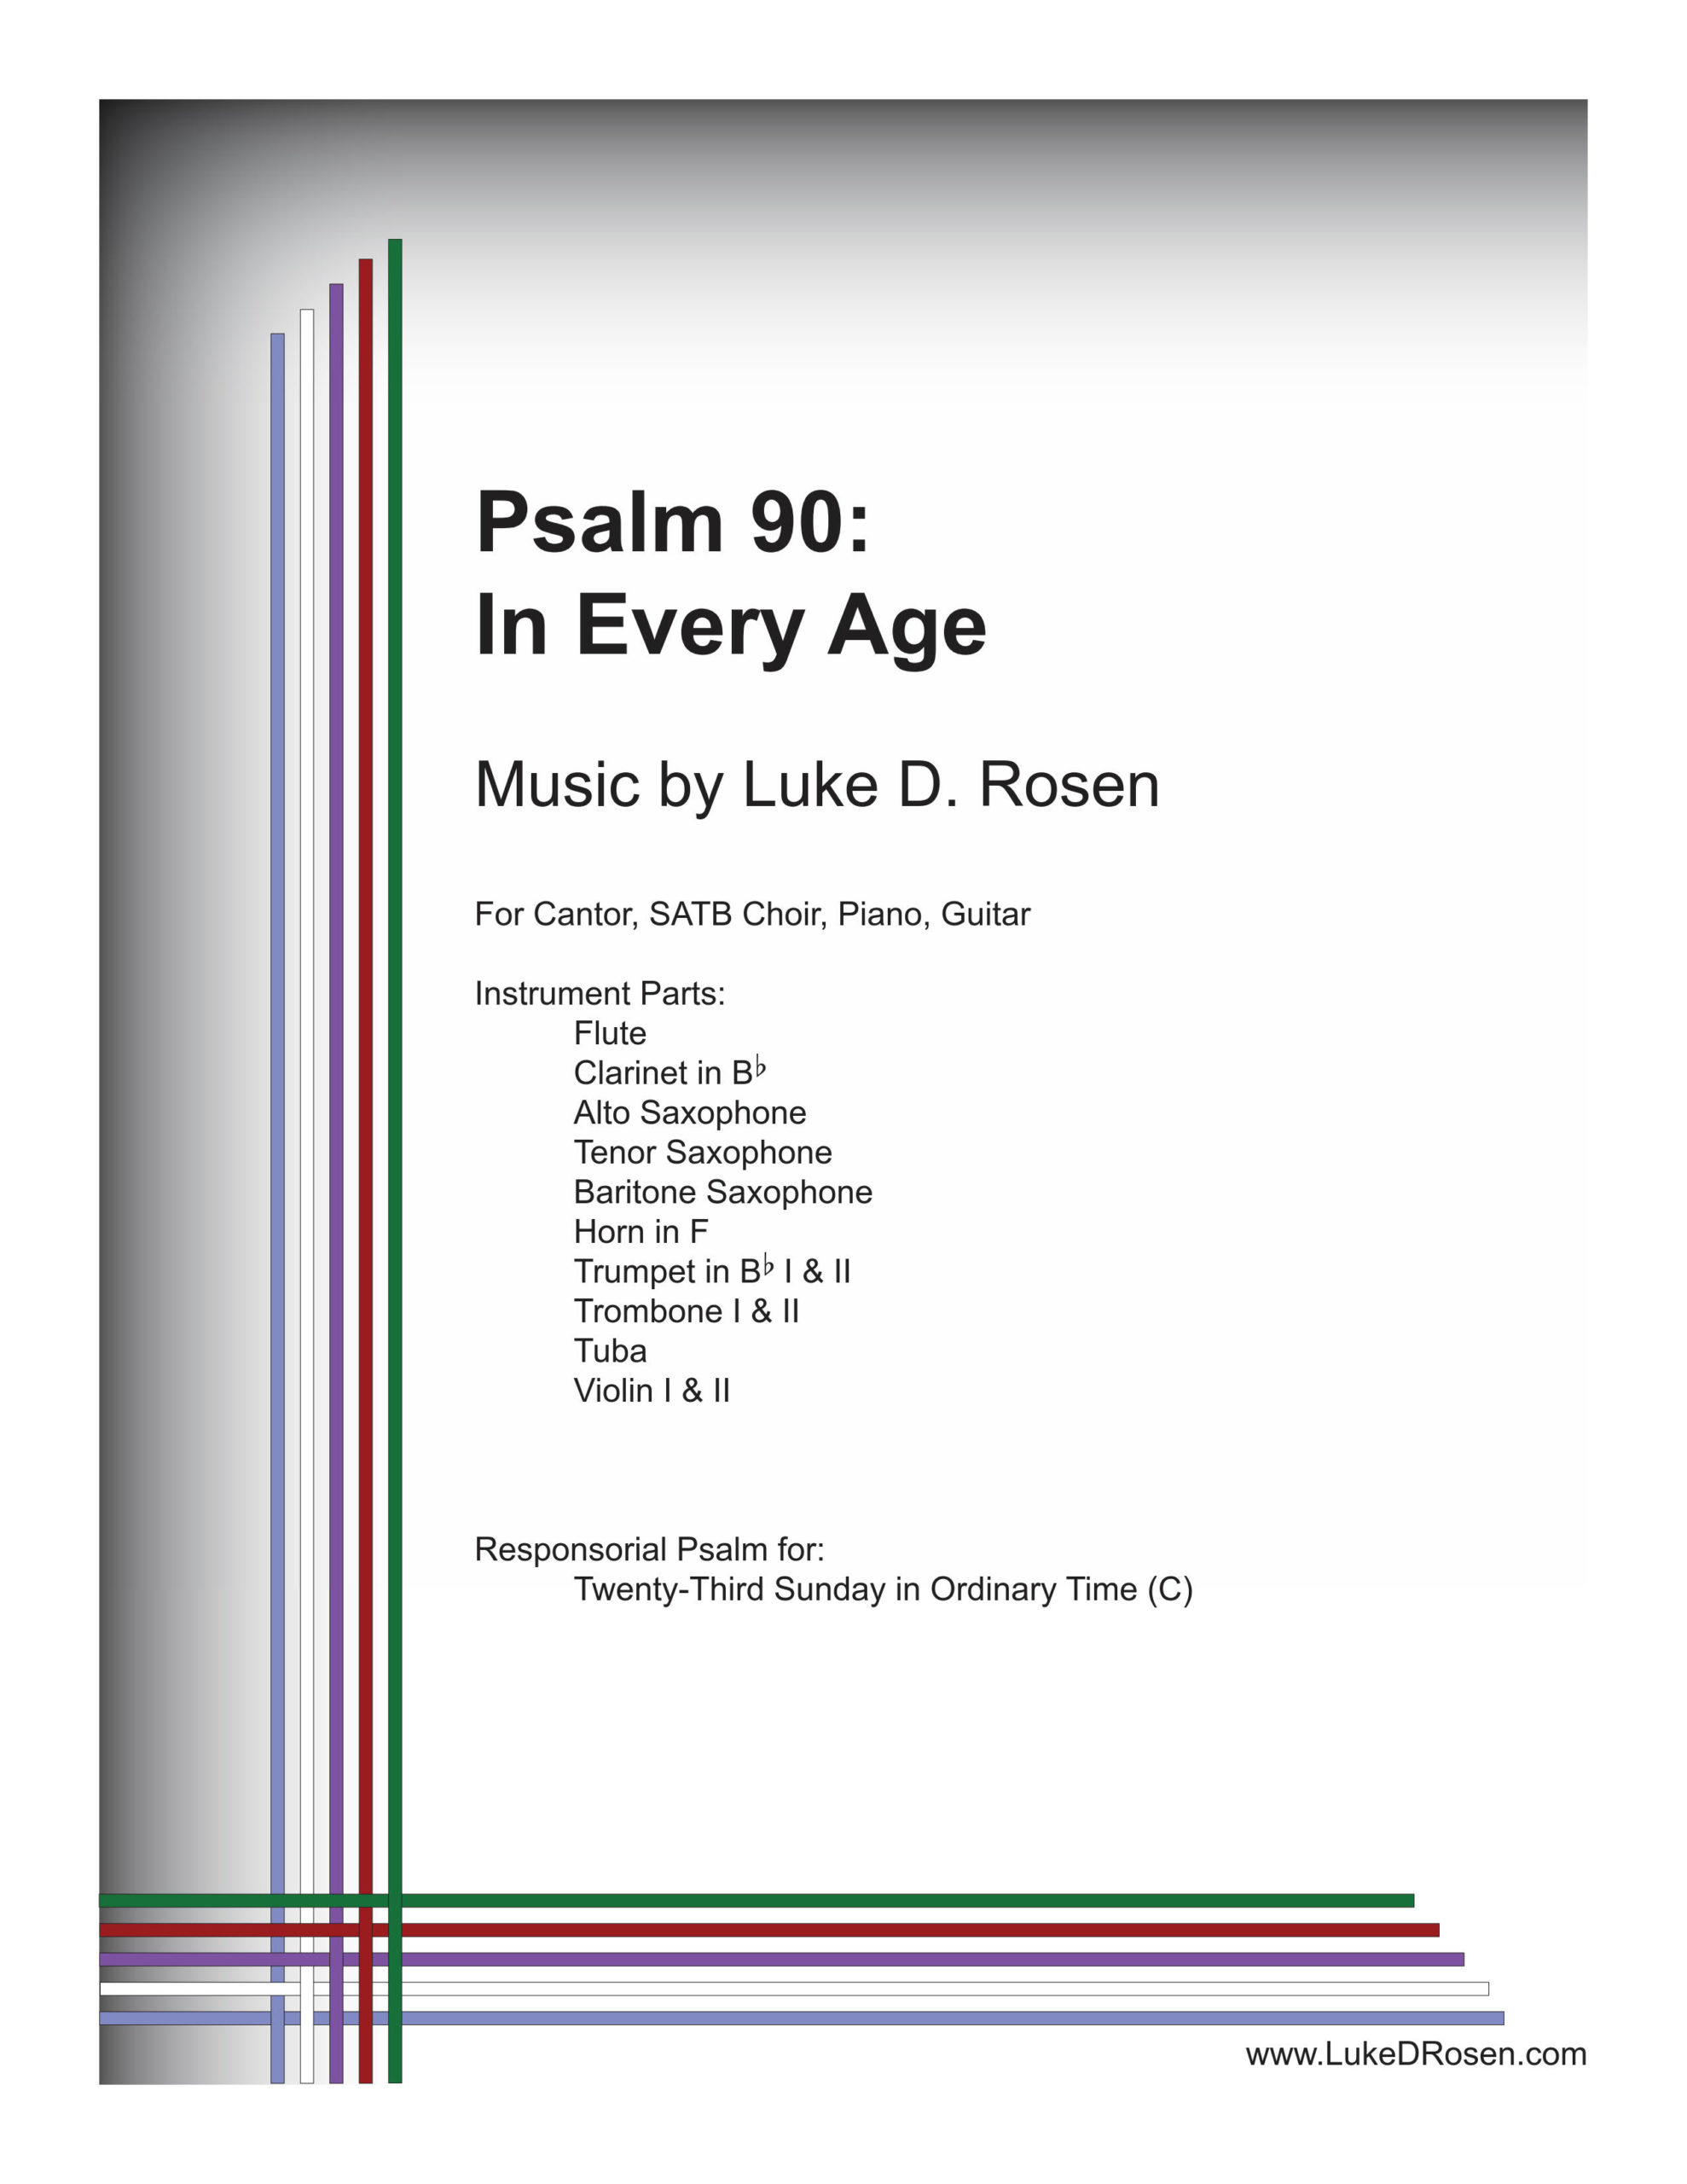 Psalm 90 In Every Age Rosen Sample Complete PDF 1 png